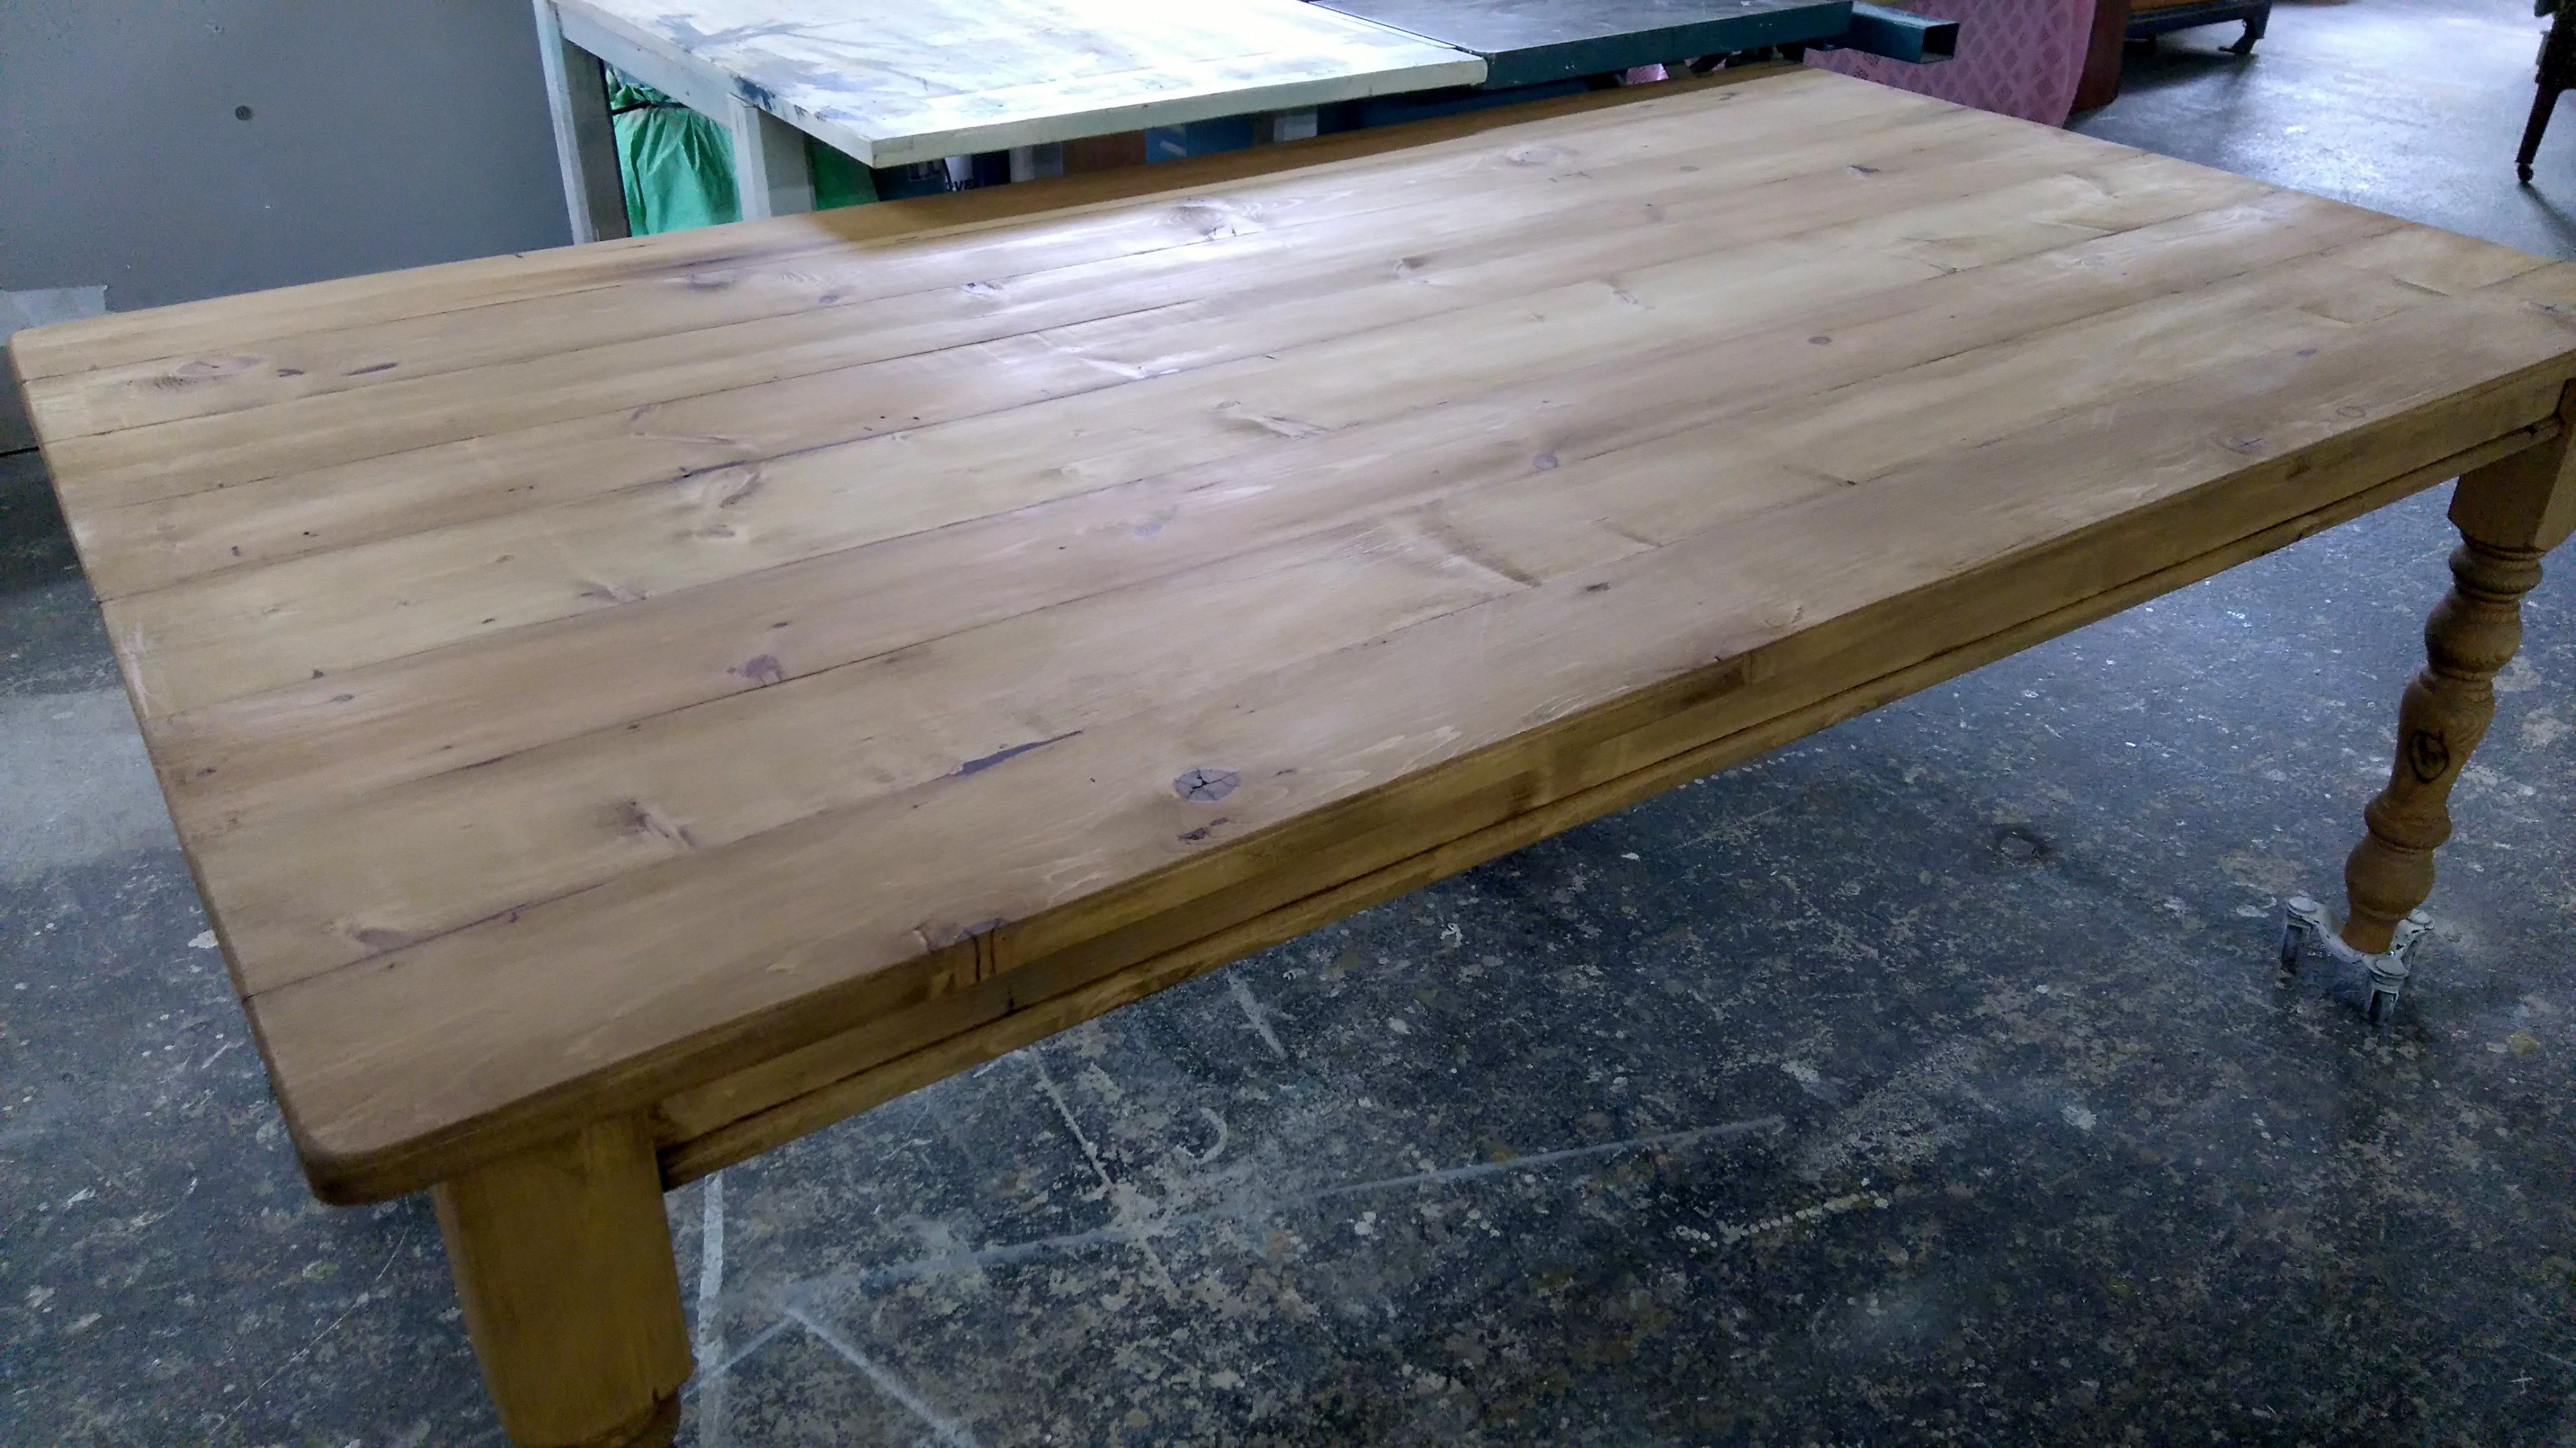 7ft X 4ft Wide Plank Top Rustic Table On 4 Turned Farmhouse Legs Hand Waxed Medium Brown All Over Farmhouse Dining Table Rustic Dining Table Farmhouse Dining